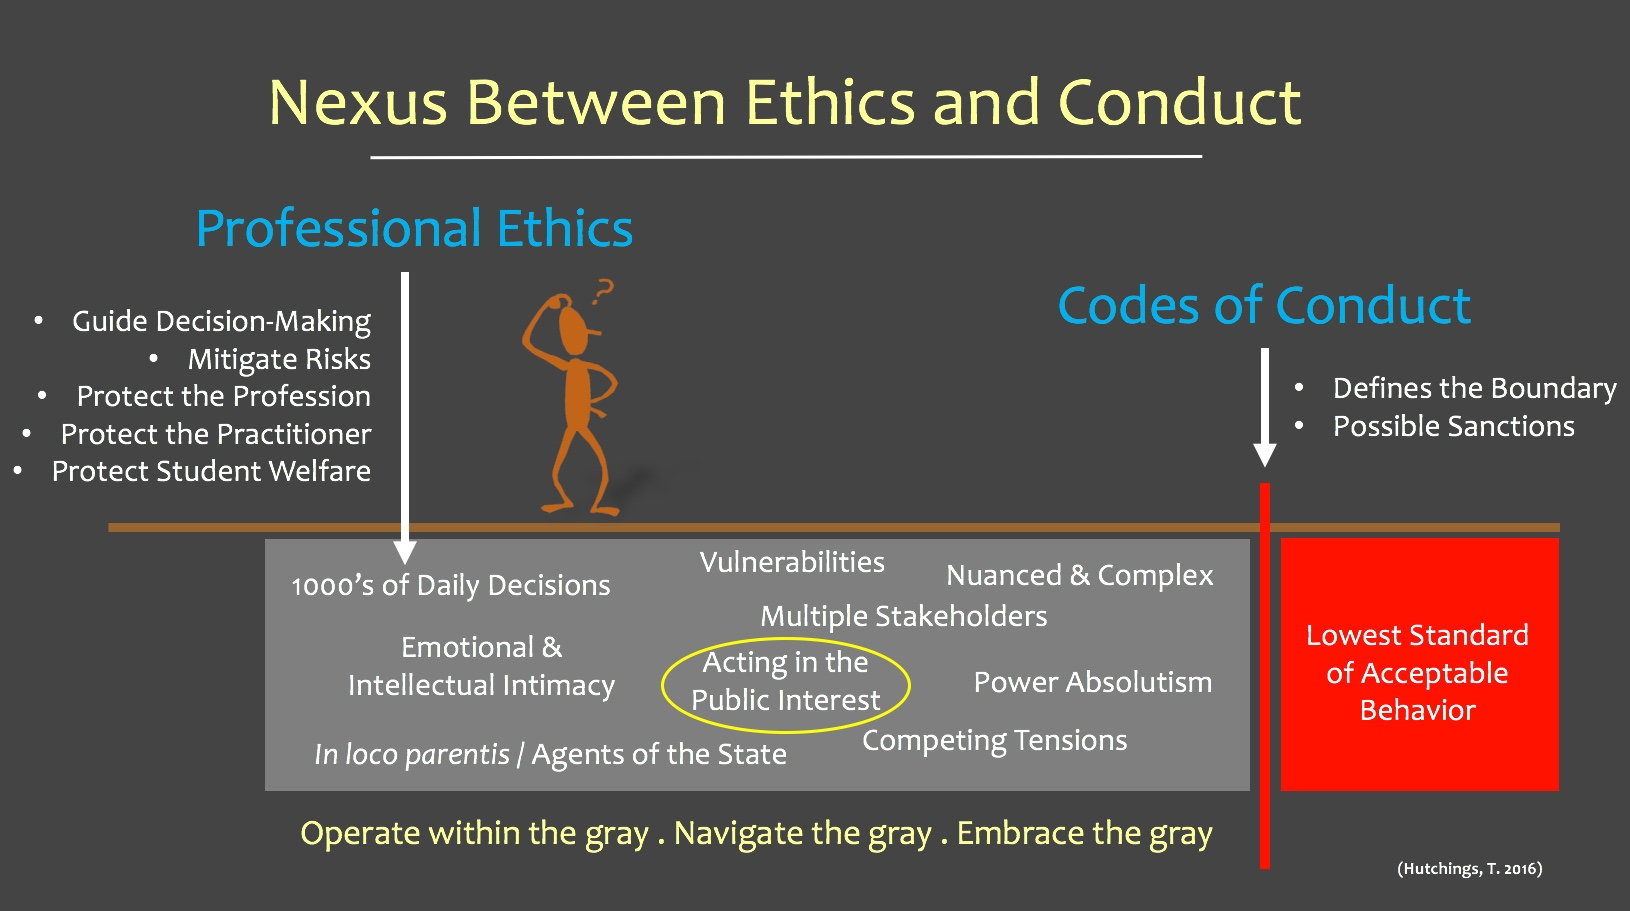 Hutchings Nexus Between Ethics and Conduct